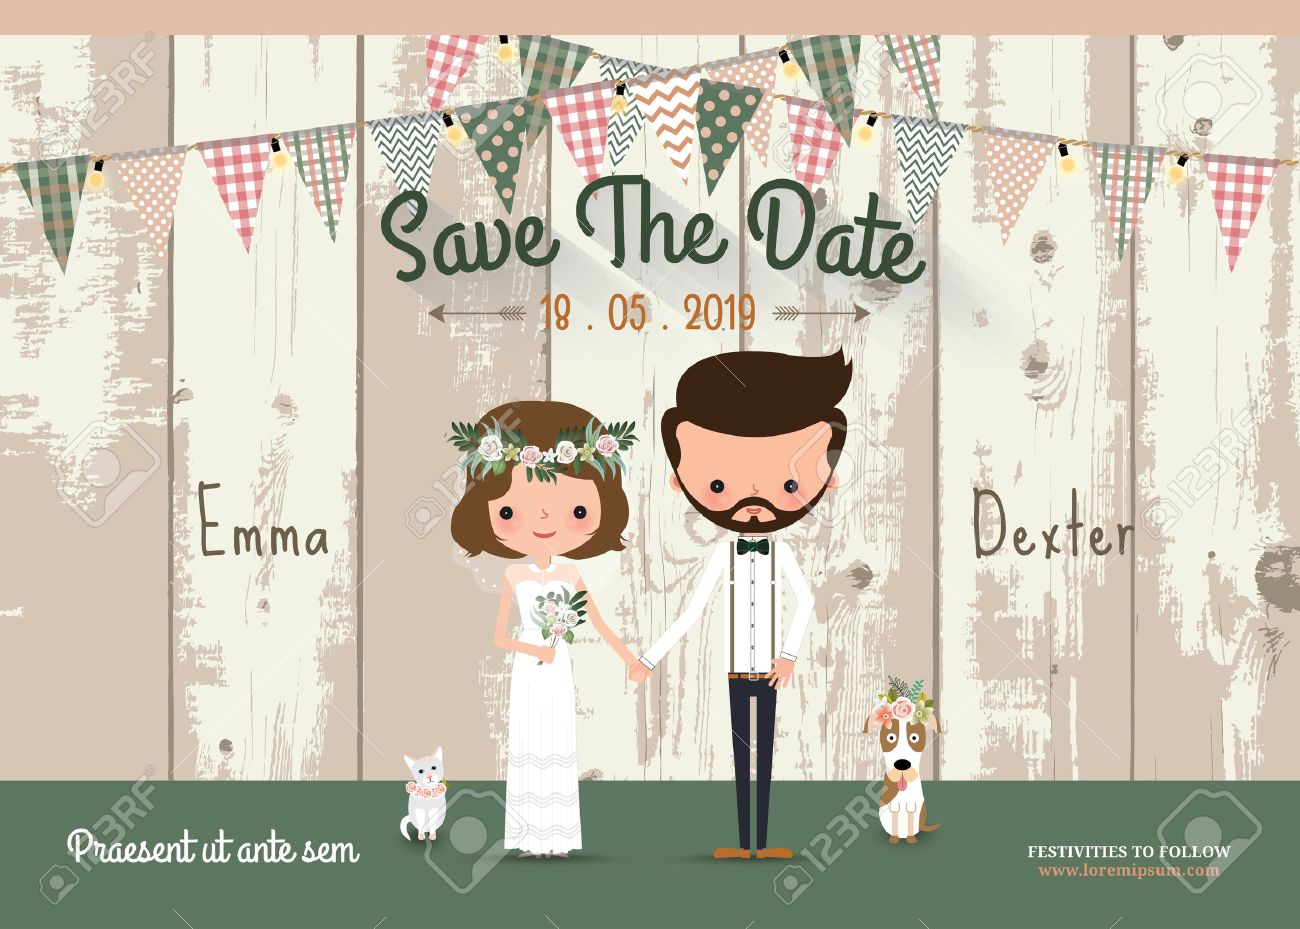 Couple rustic wedding invitation card and save the date with wood background - 62138711